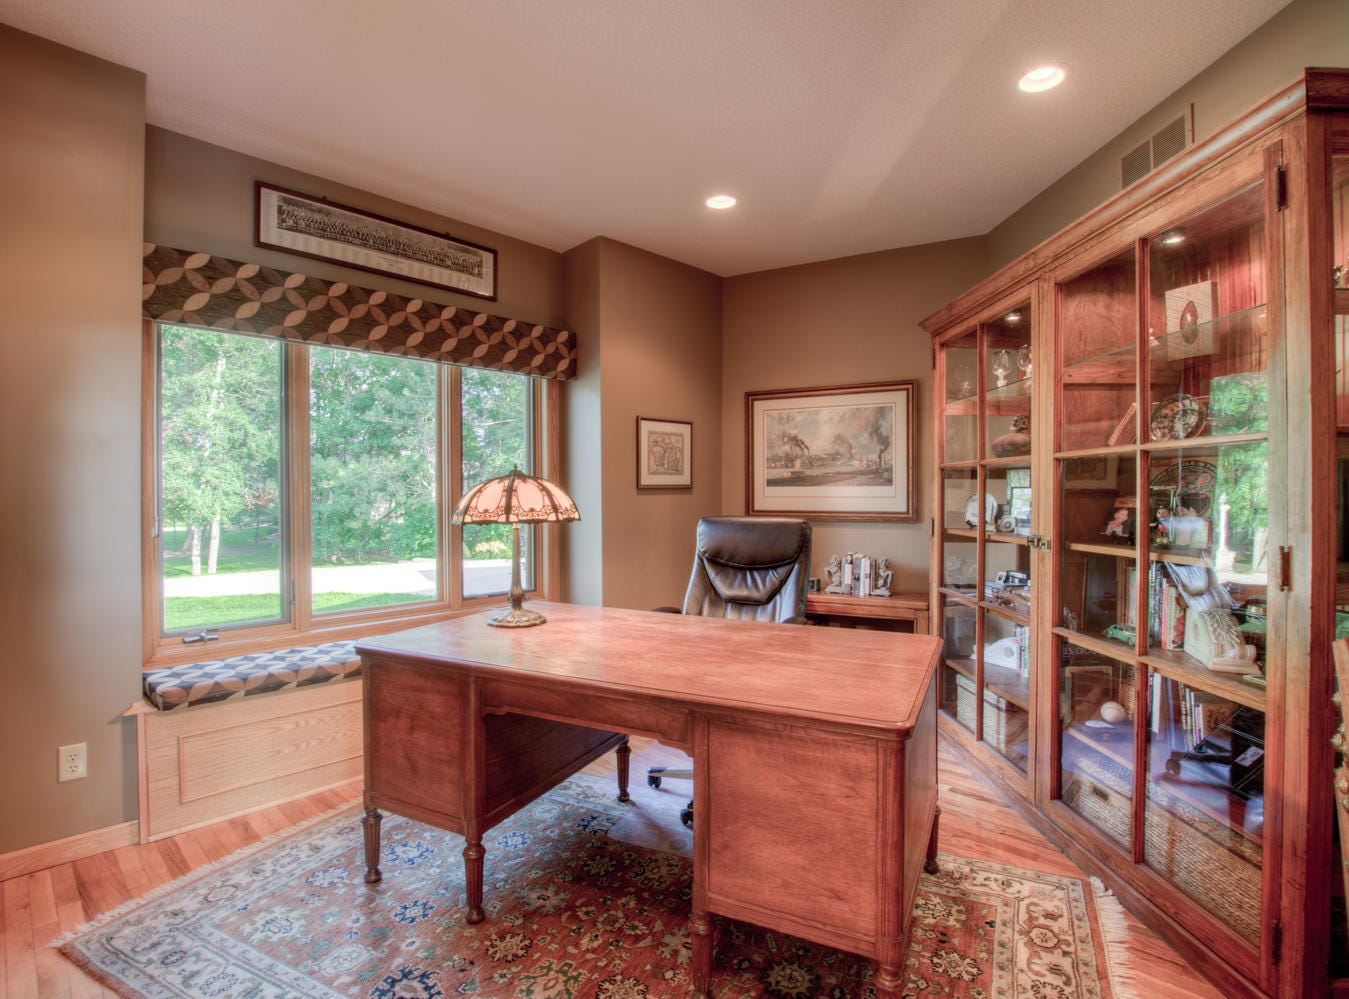 The main floor offers a private home office, finished with a built-in window seat.